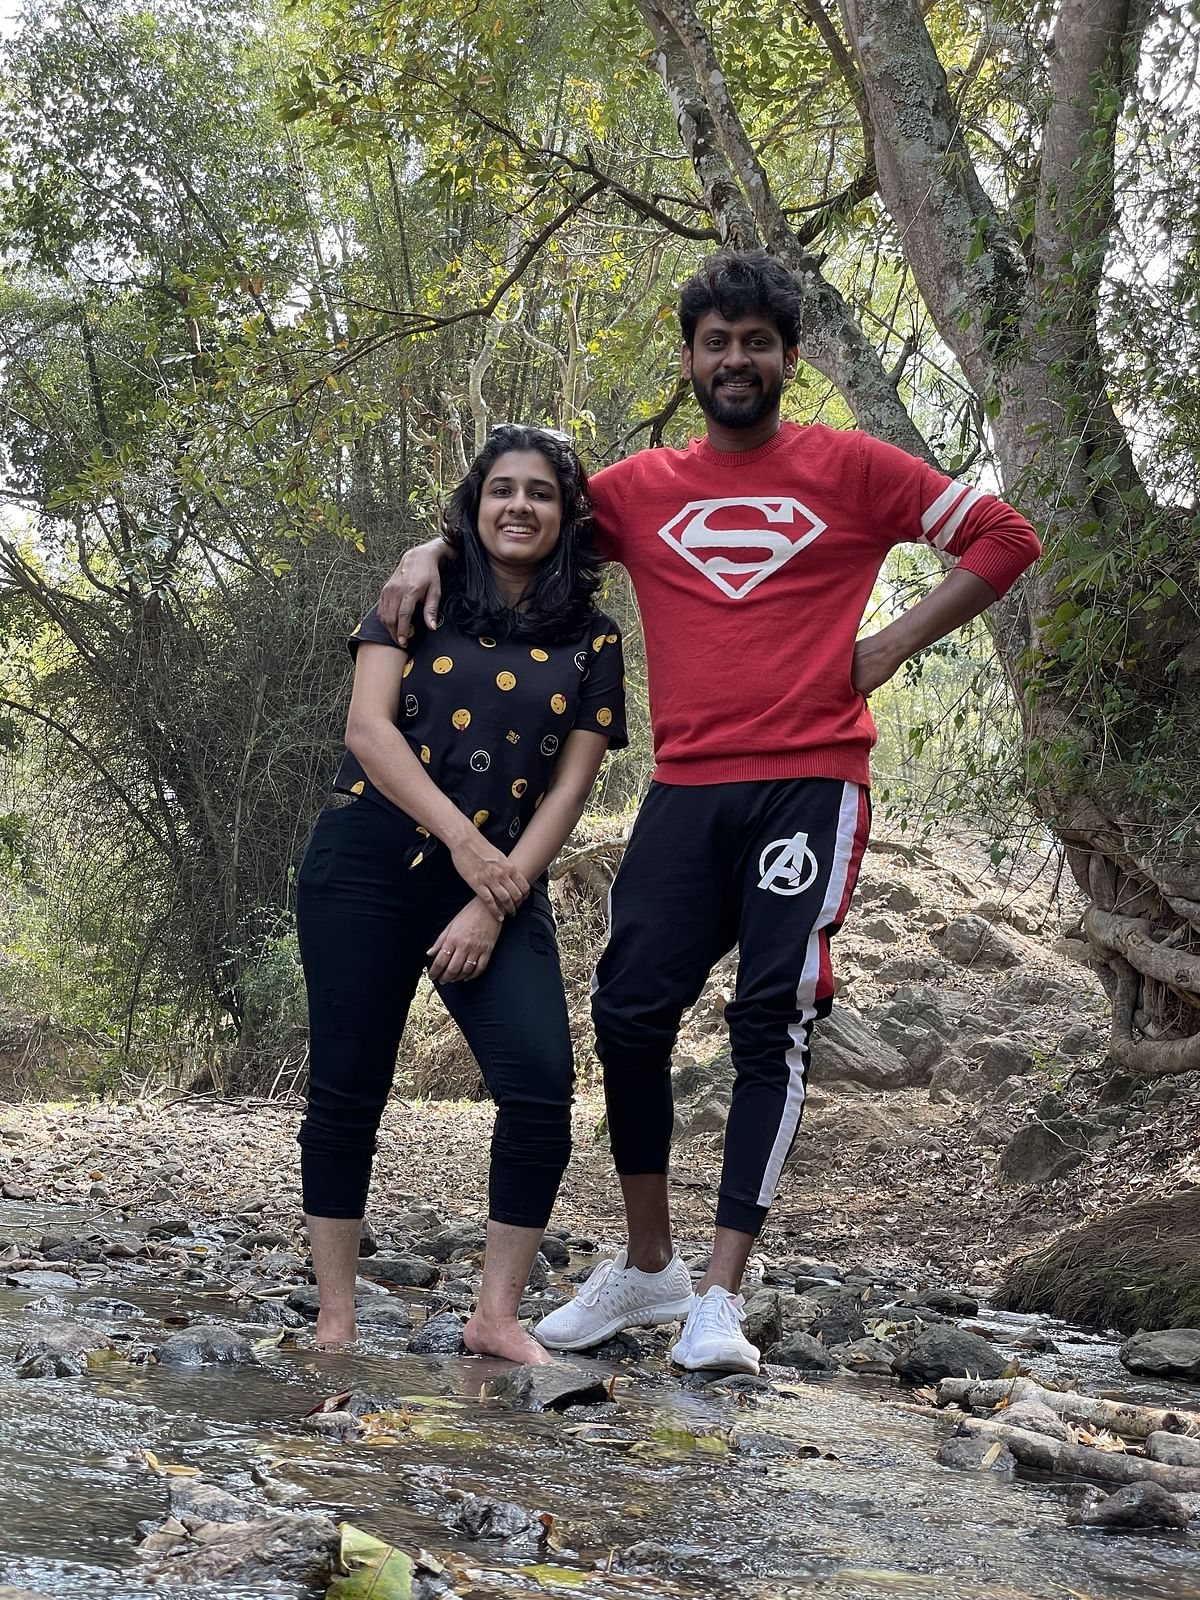 Rio with his wife